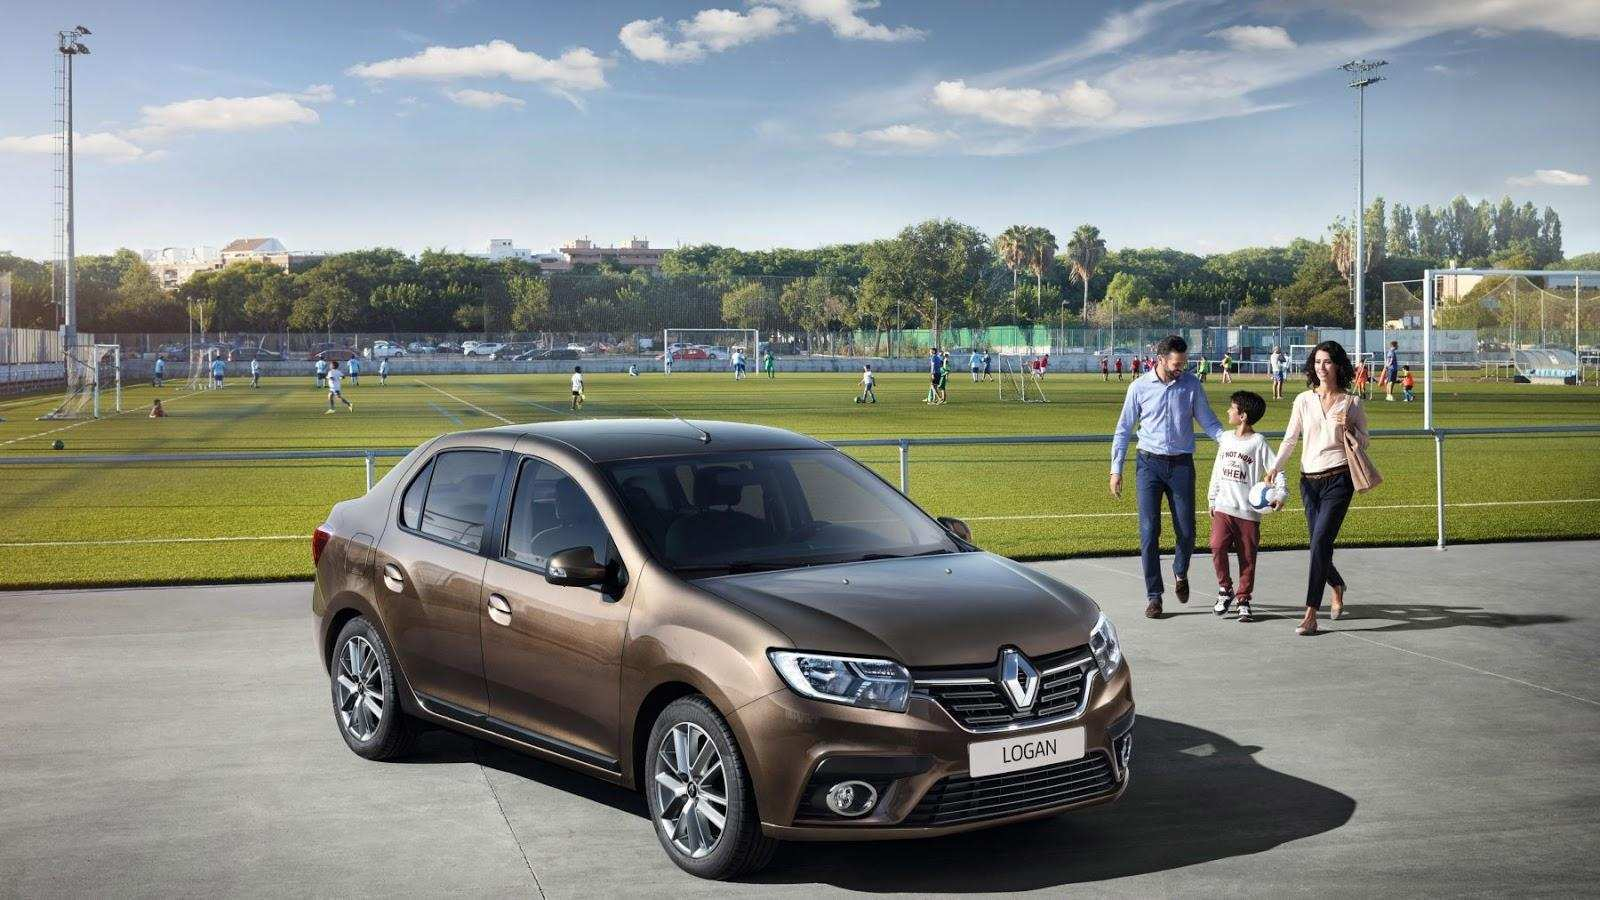 90 Best Review Renault Logan 2020 Release Date by Renault Logan 2020